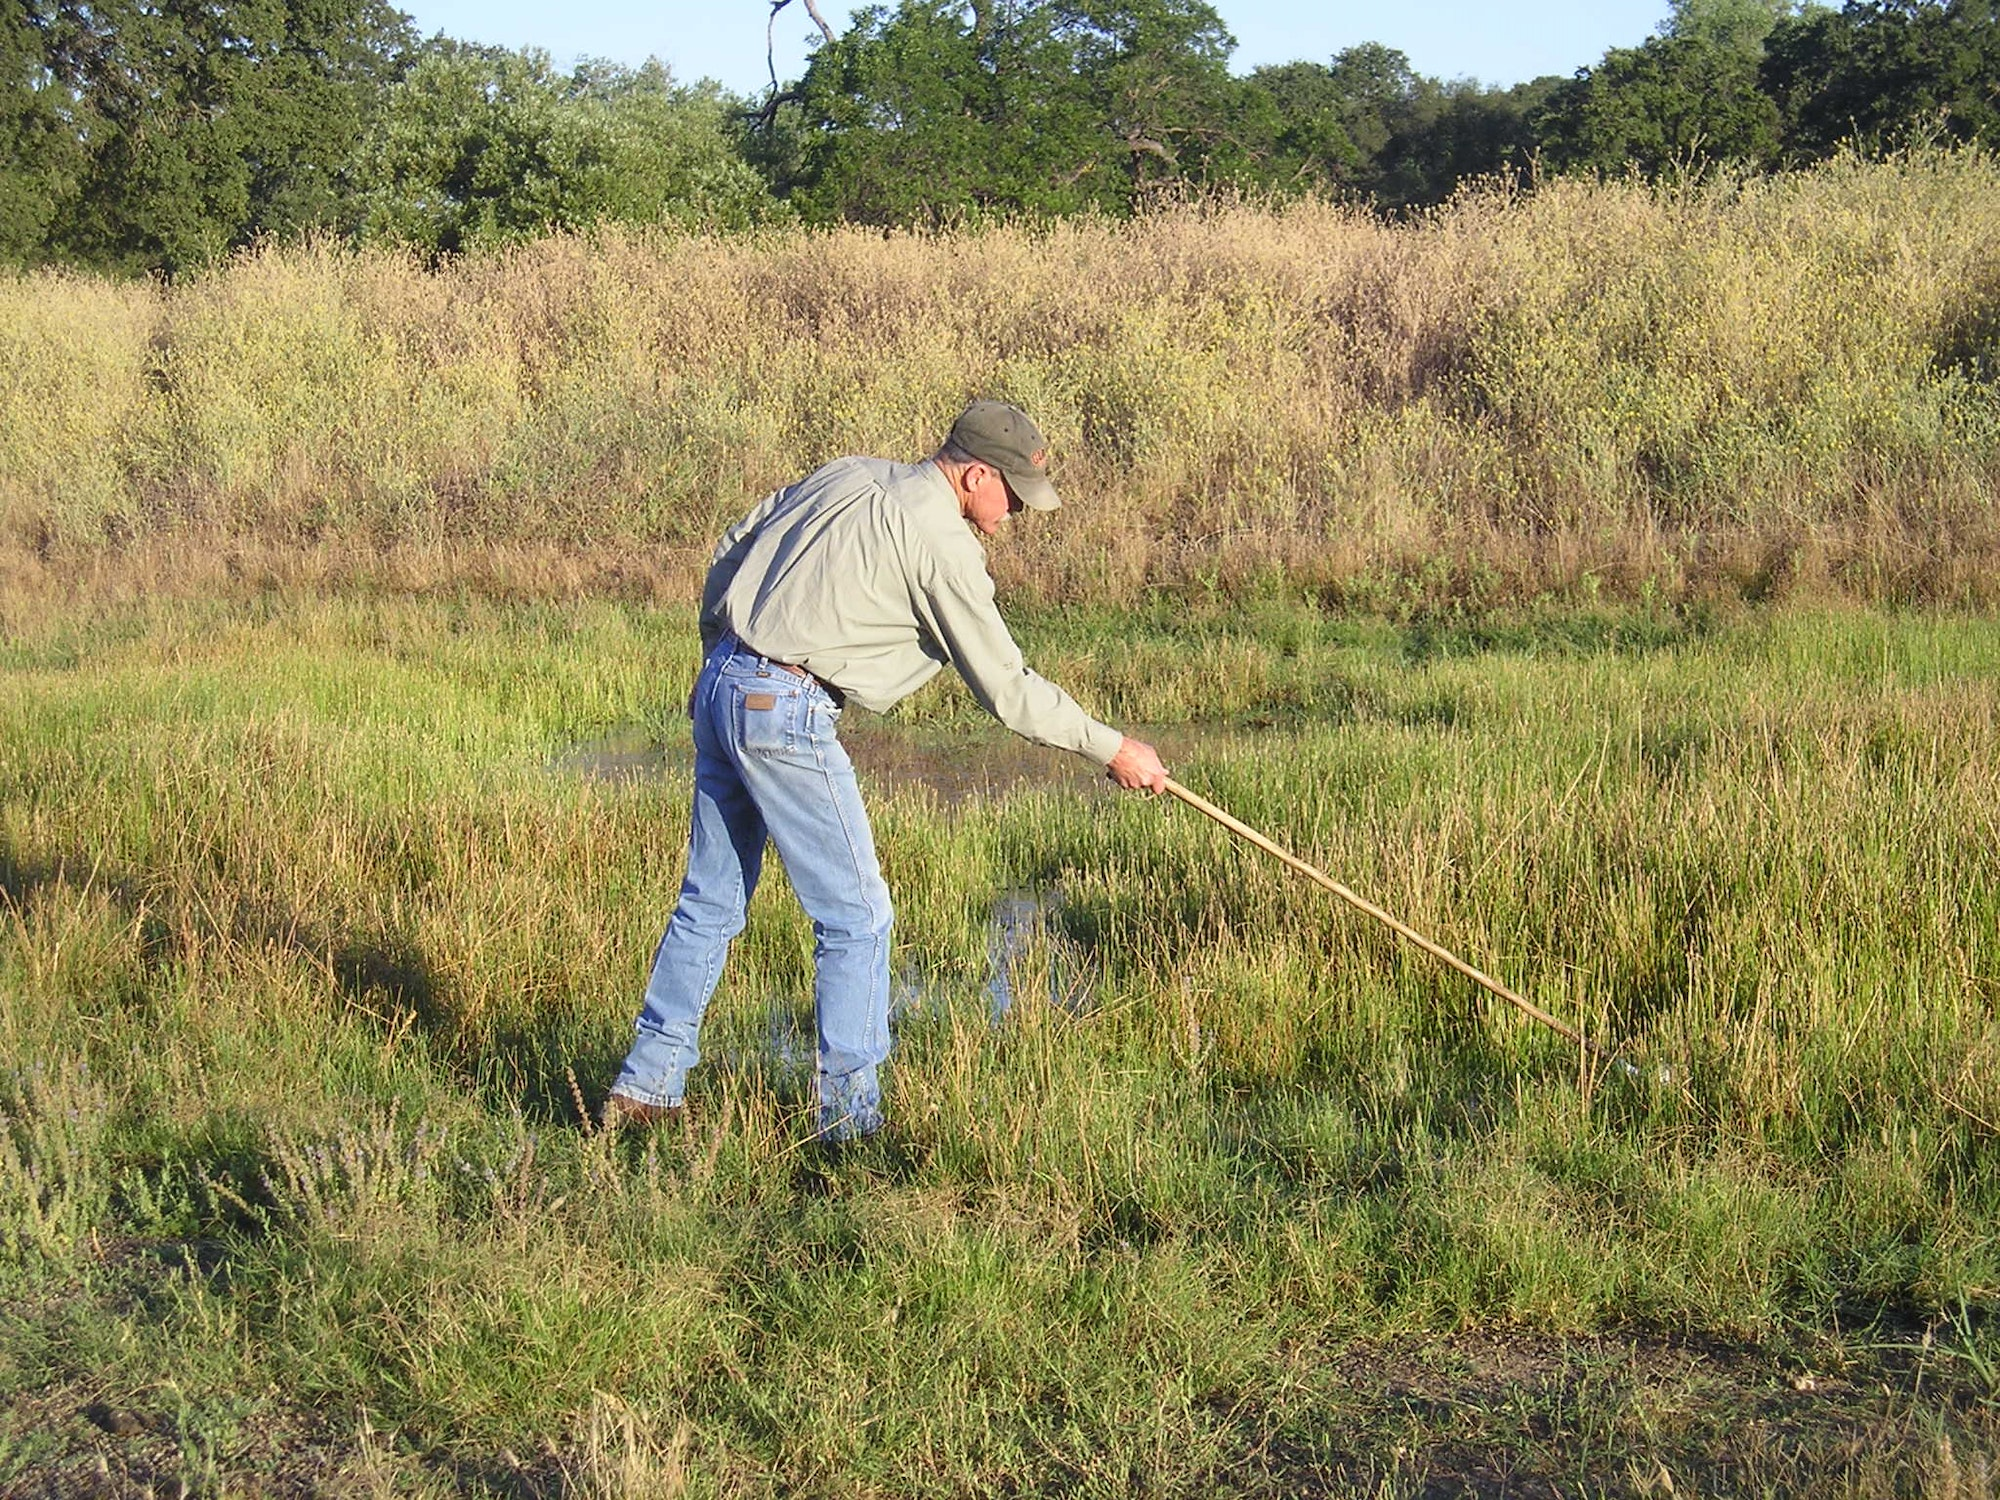 Technician,Mike Robinson dipping water to check for mosquito larvae